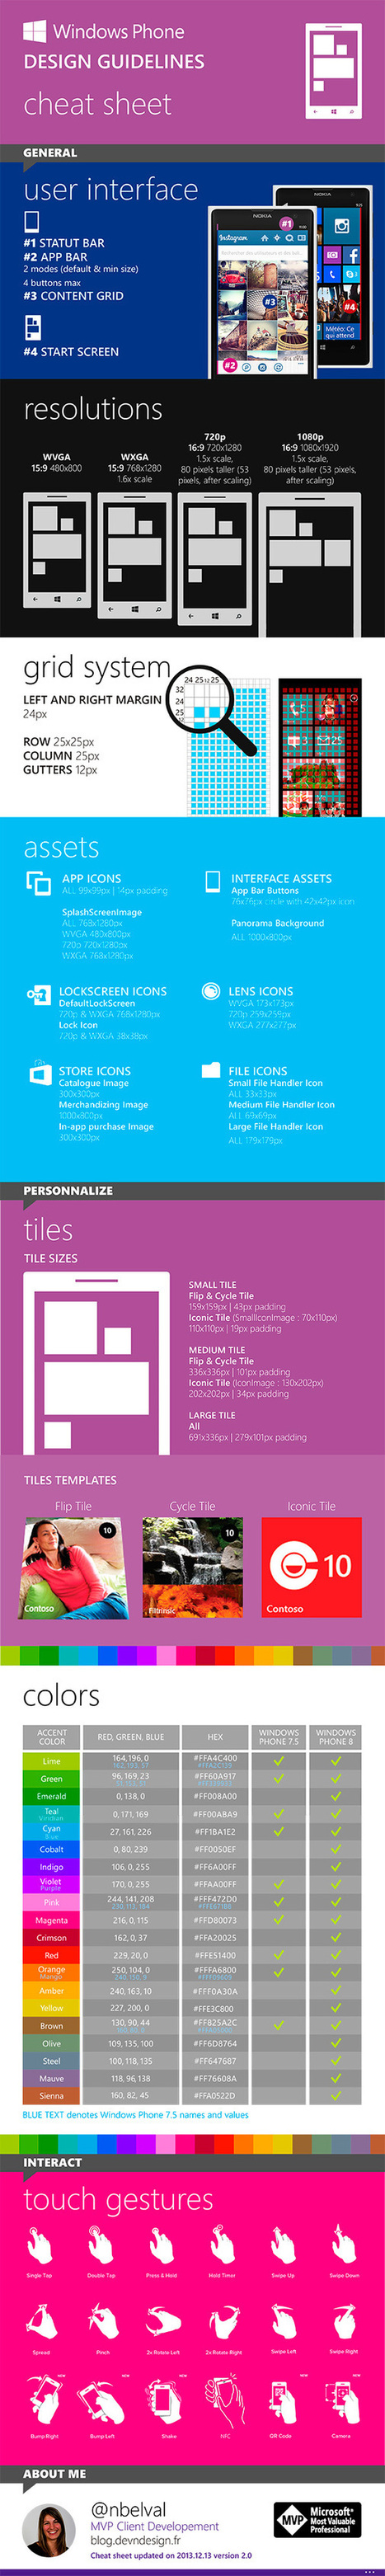 Recursos para diseñar apps para Windows Phone 8 | Tecnologías Microsoft | Scoop.it